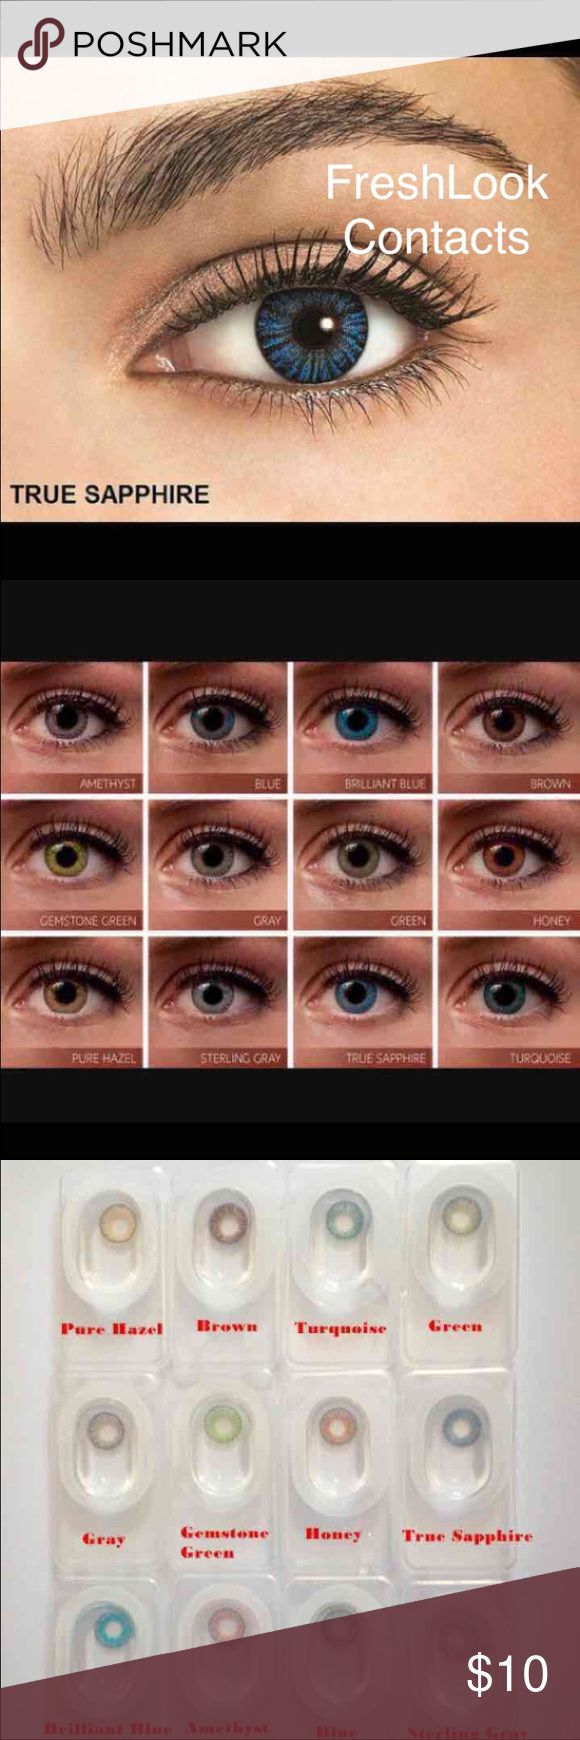 How to order colored contacts online - True Sapphire Contacts One Pair Reusable Bundle And Save 2 Pair 18 3pair 27 Non Prescription Cosmetic Only Condition Brand New Brand Freshlook